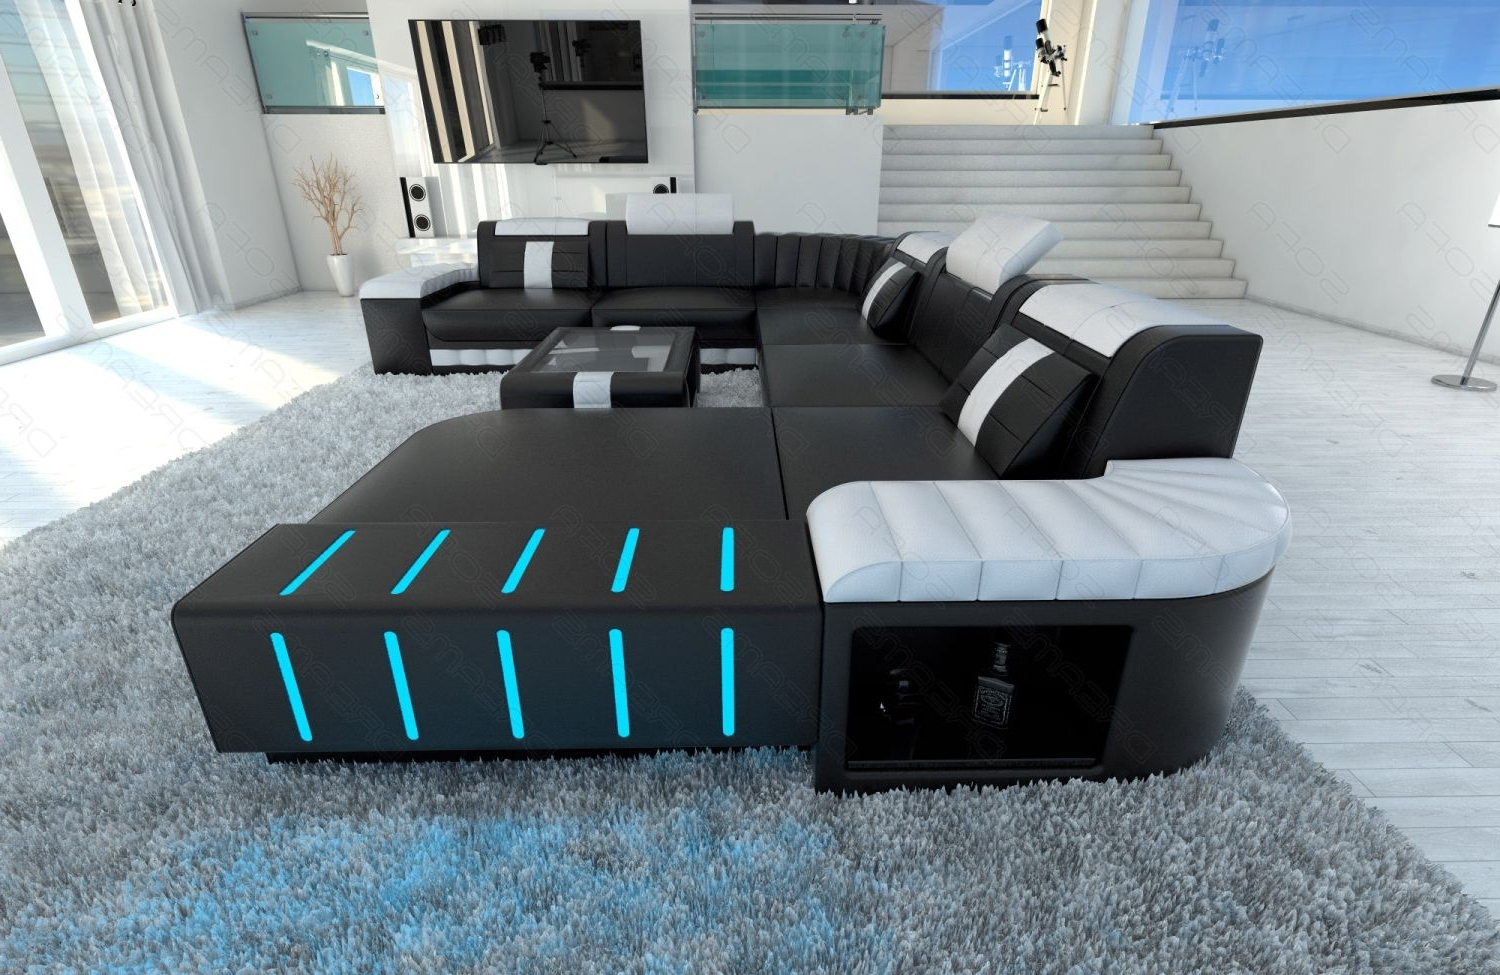 Sectional Sofas At Ebay In Latest Xxl Sectional Sofa Bellagio Led U Shaped Black White (View 14 of 20)